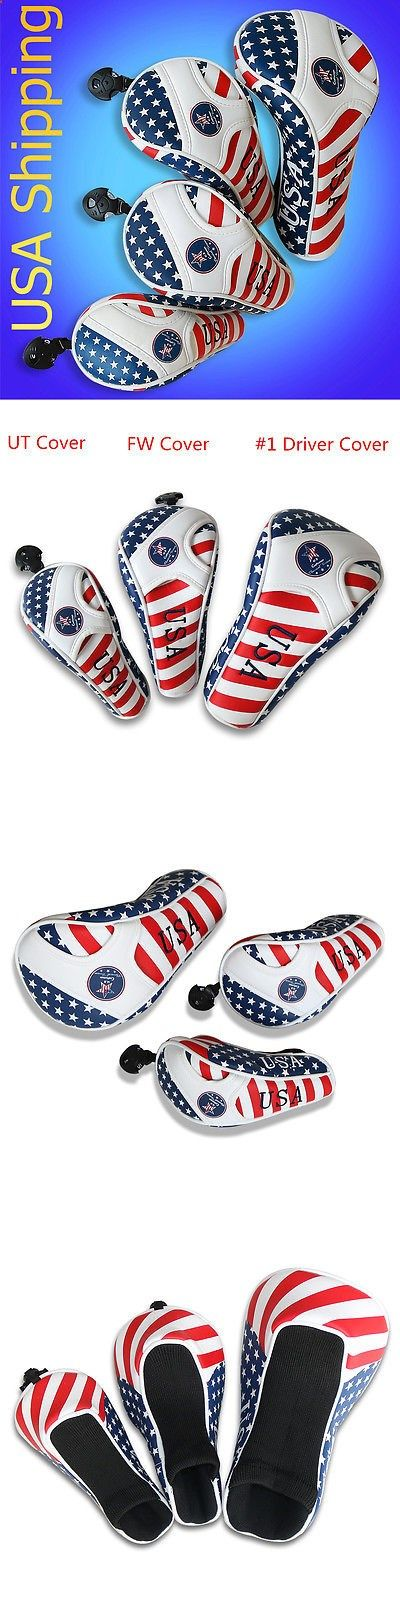 Club Head Covers 18930: Golf Driver Headcover Hybrid Head Cover Usa Flag For Taylormde Adams Callaway BUY IT NOW ONLY: $90.82